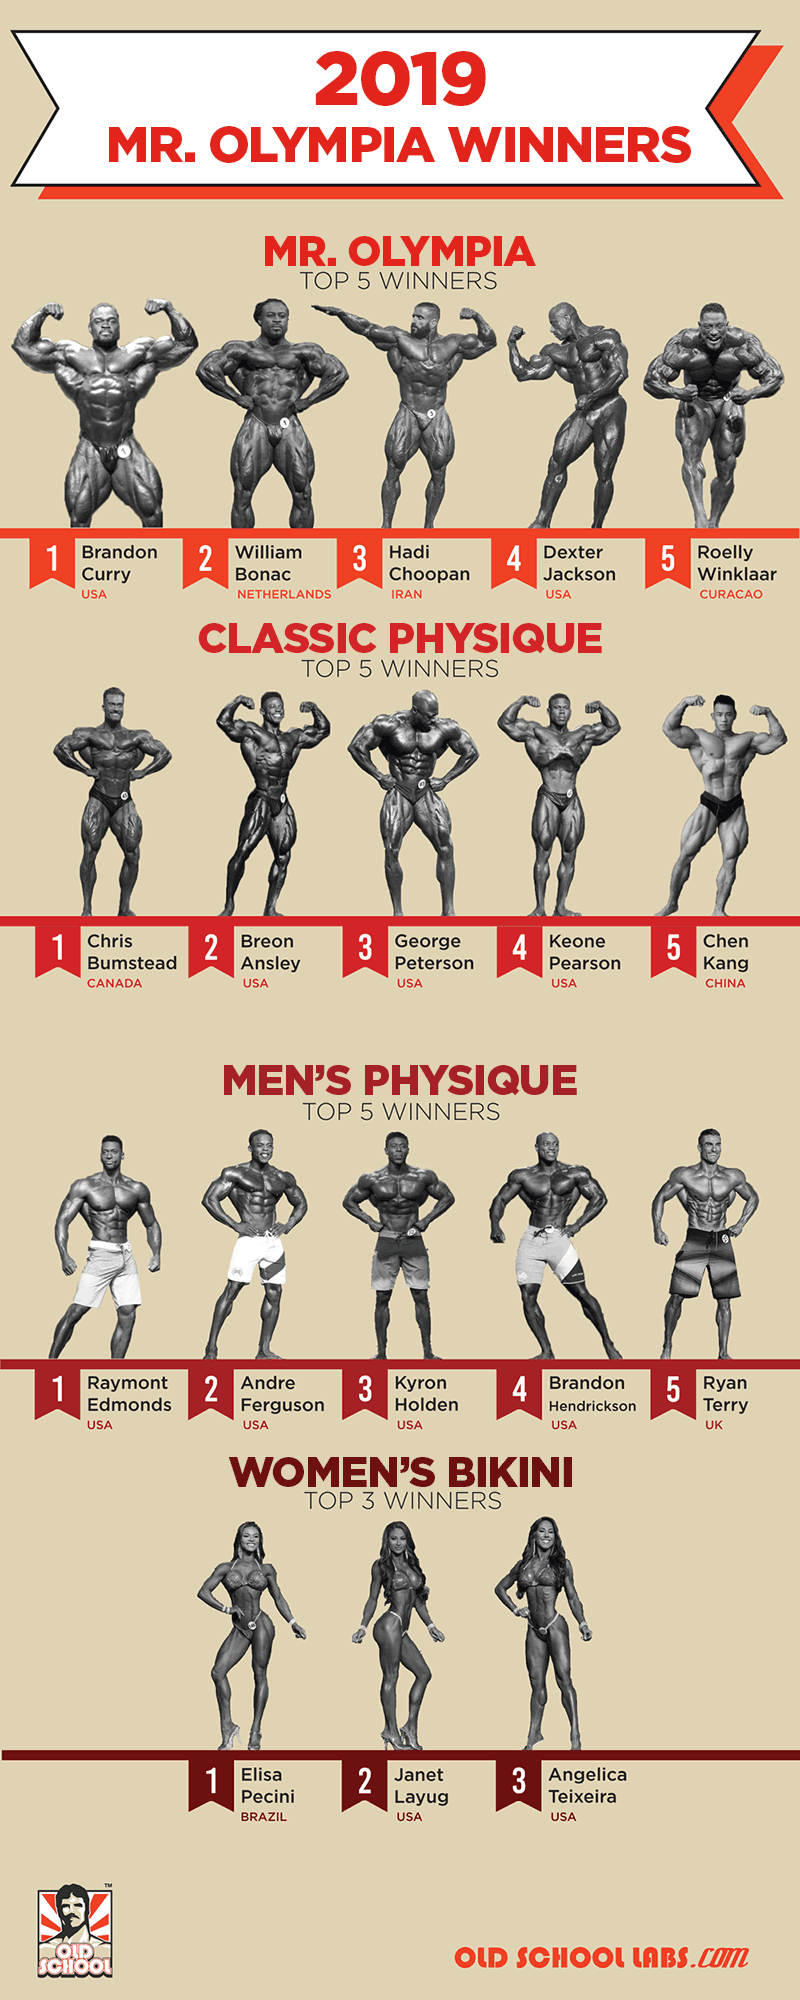 Mr. Olympia 2019 Winners Results